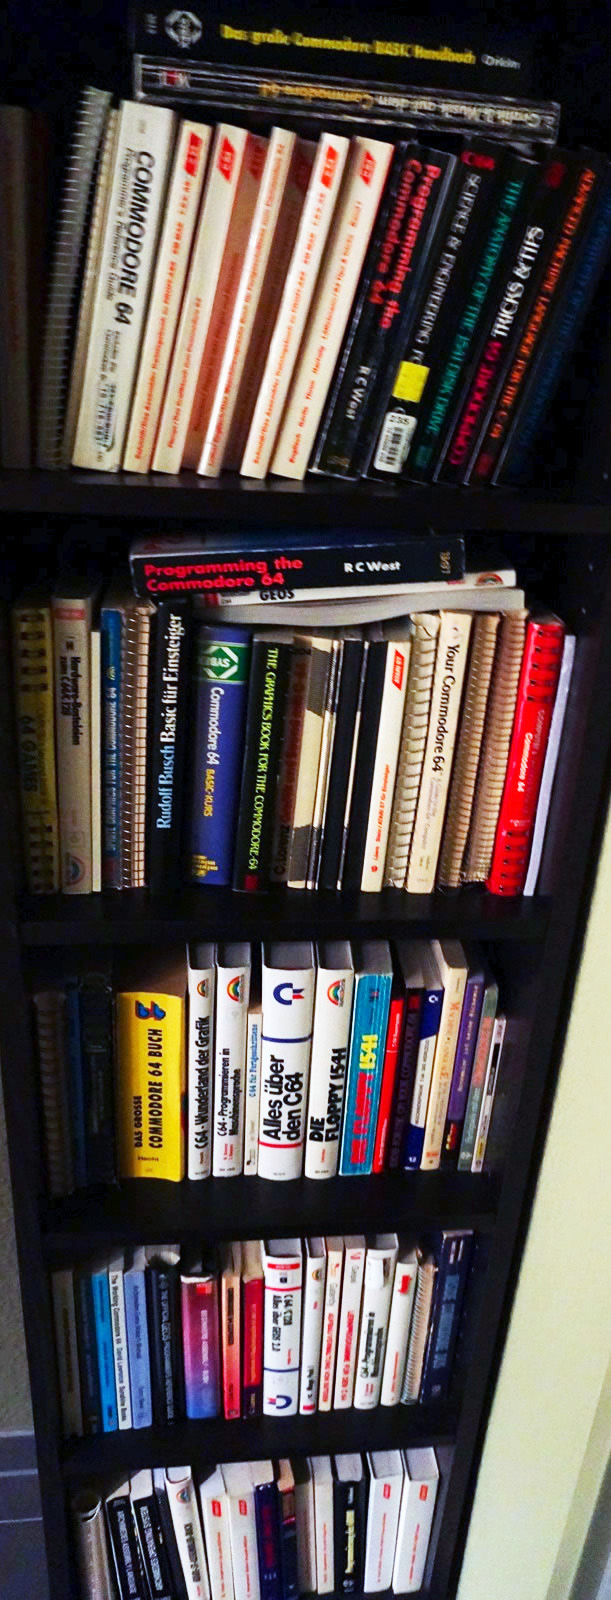 Collection of all sorts of Commodore C64 books